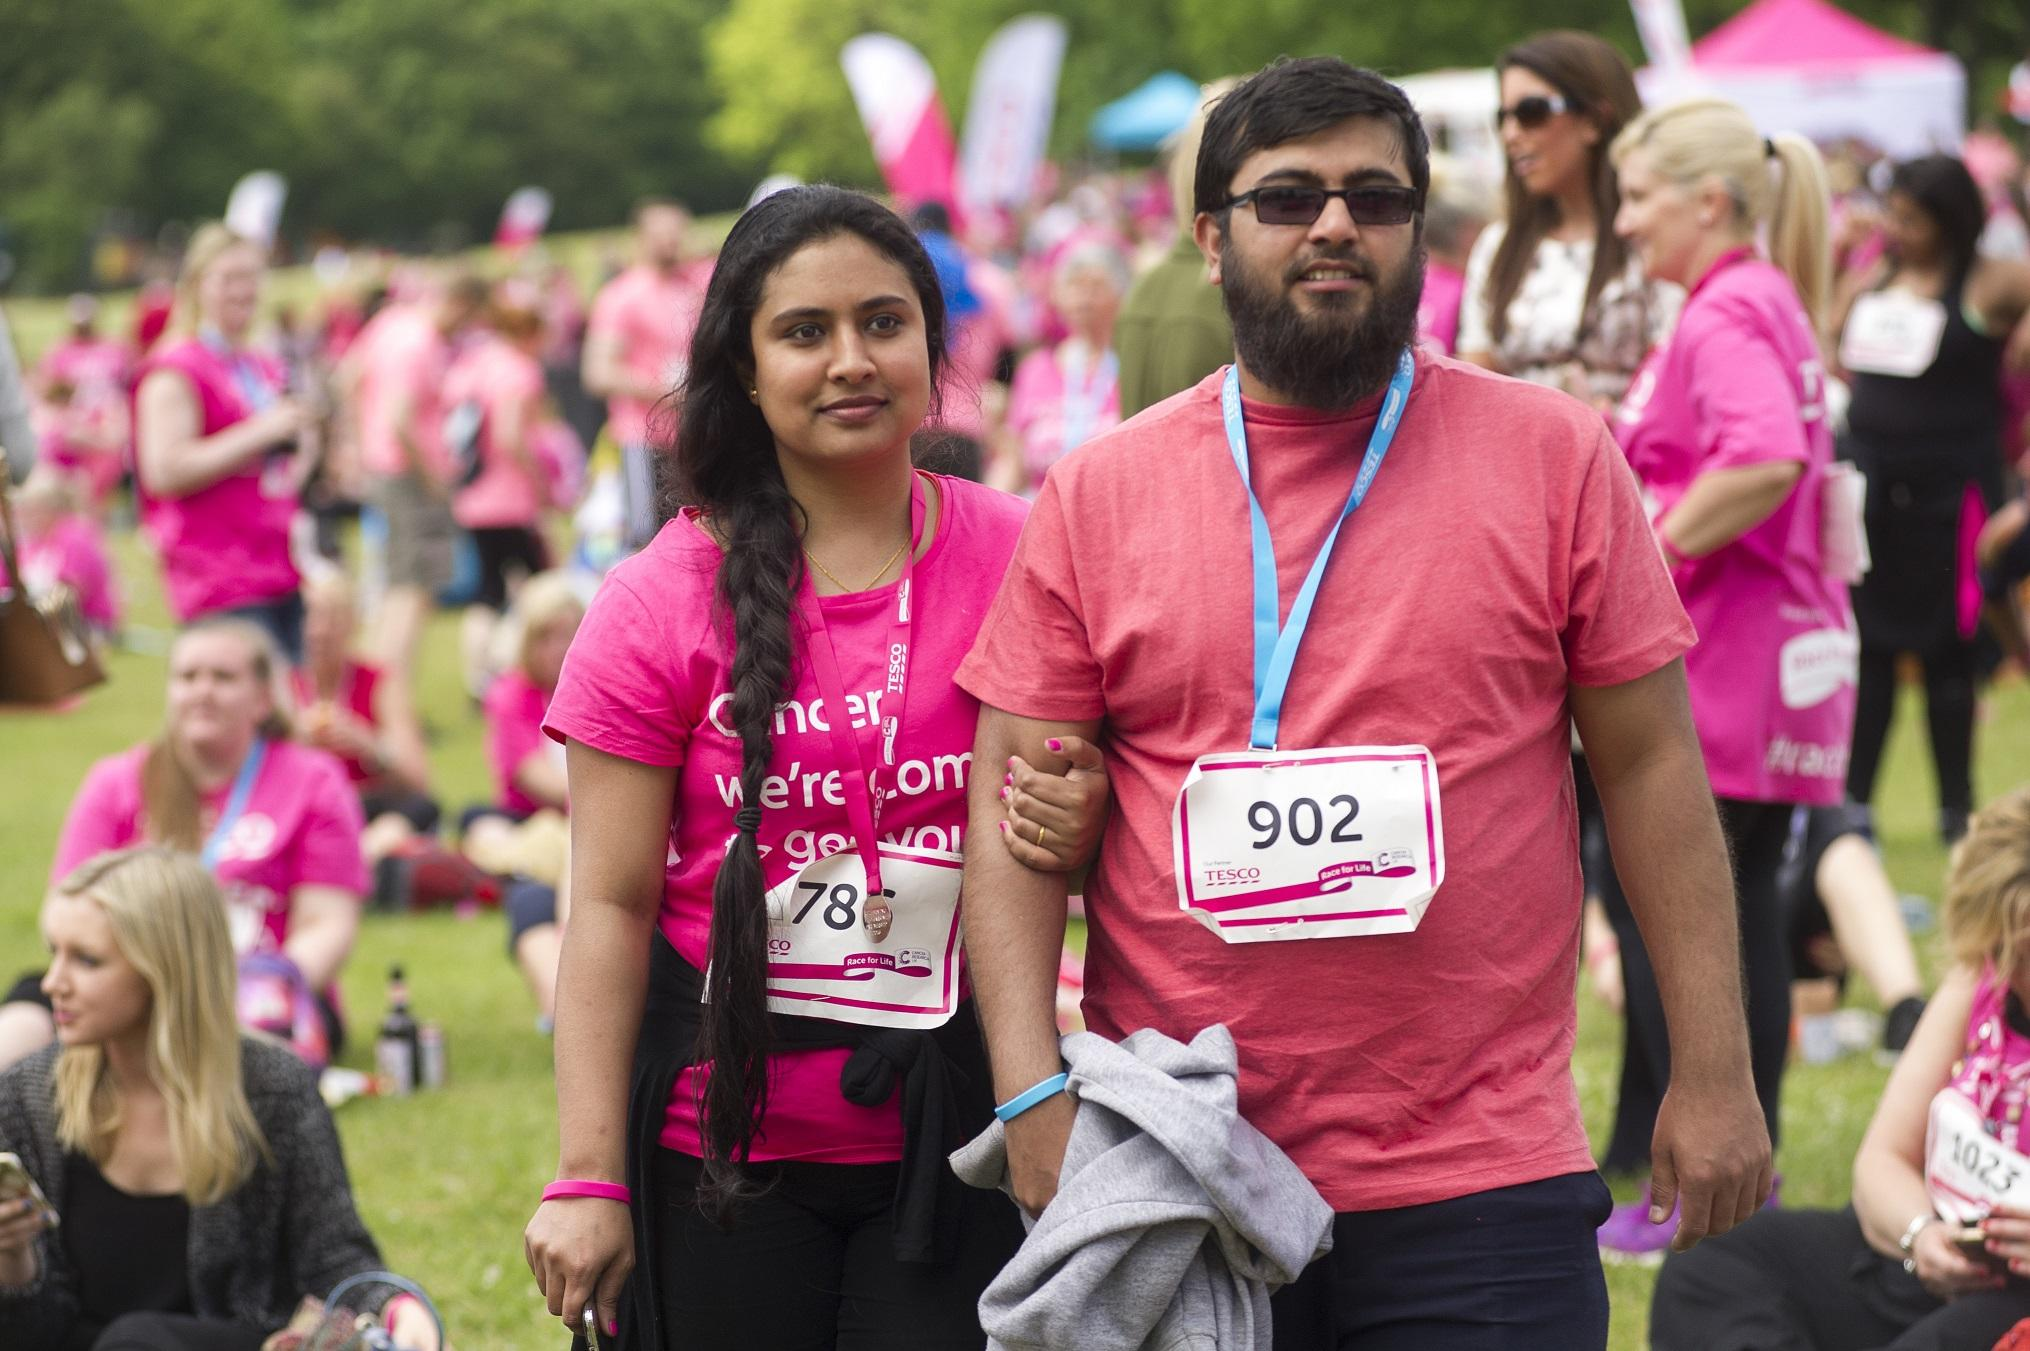 The Race for Life participants